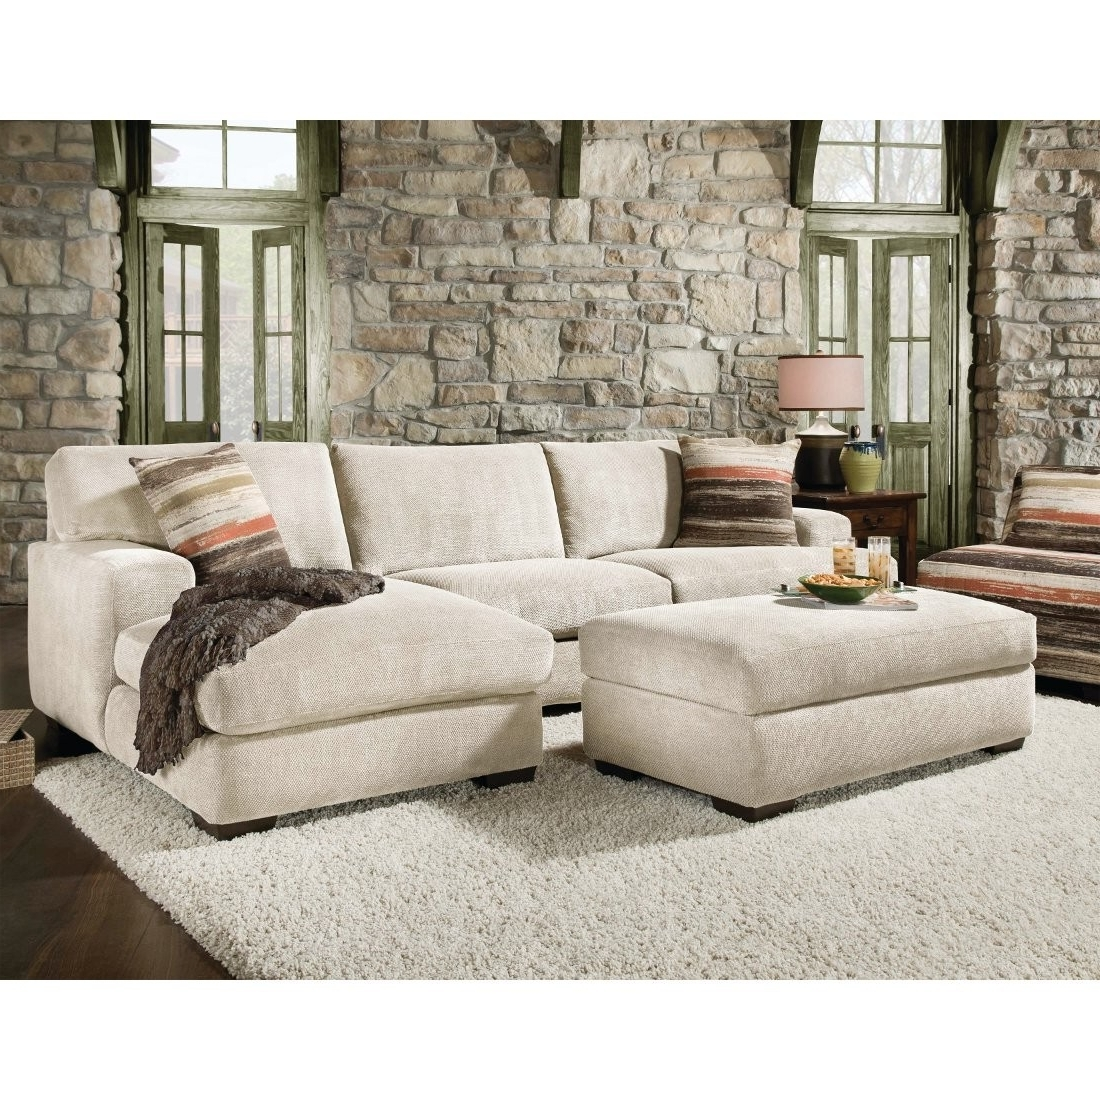 Newest Sectionals With Oversized Ottoman Inside Cozy Oversized Sectional Sofa — Awesome Homes : Super Comfortable (View 14 of 15)